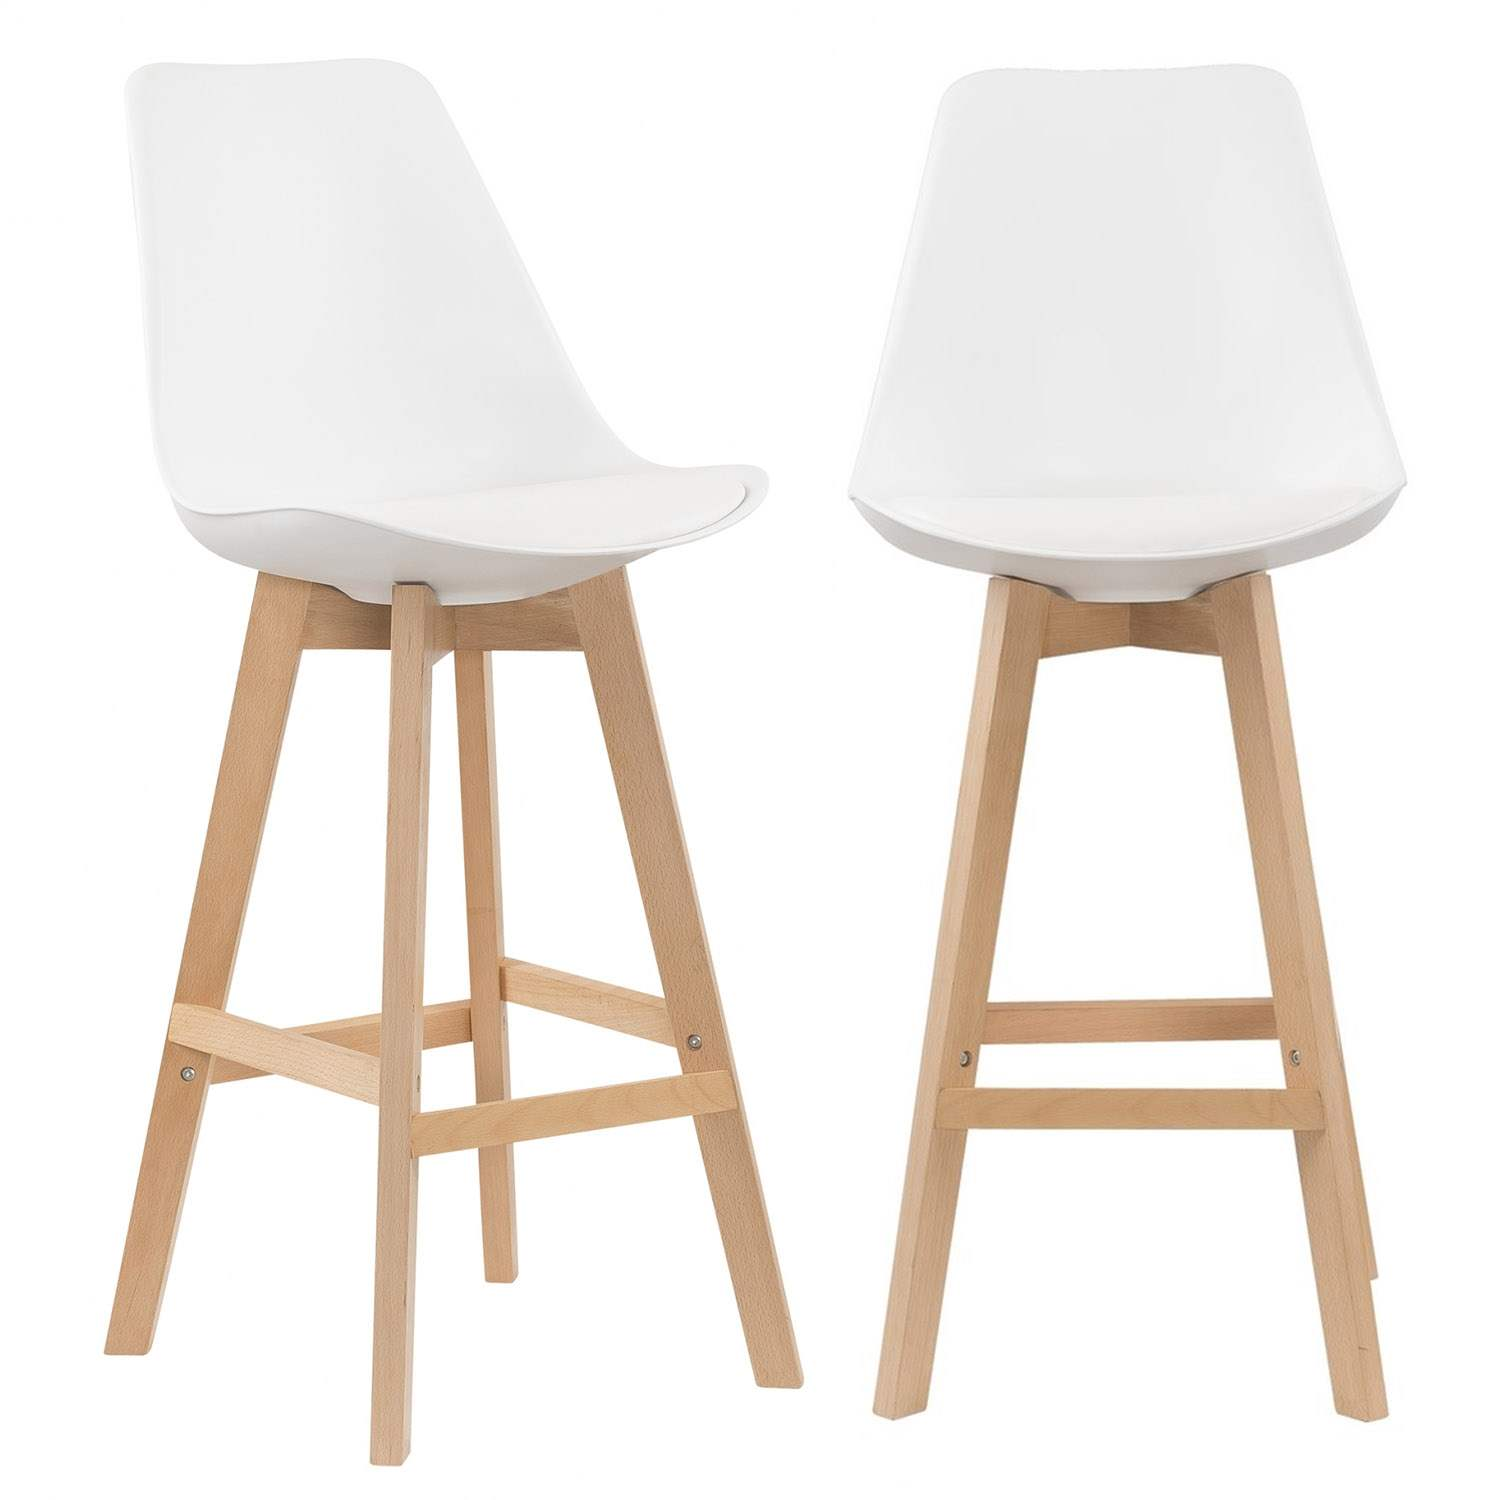 deco in paris 5 lot de 2 tabourets de bar scandinave blanc gala tabouret gala blanc. Black Bedroom Furniture Sets. Home Design Ideas